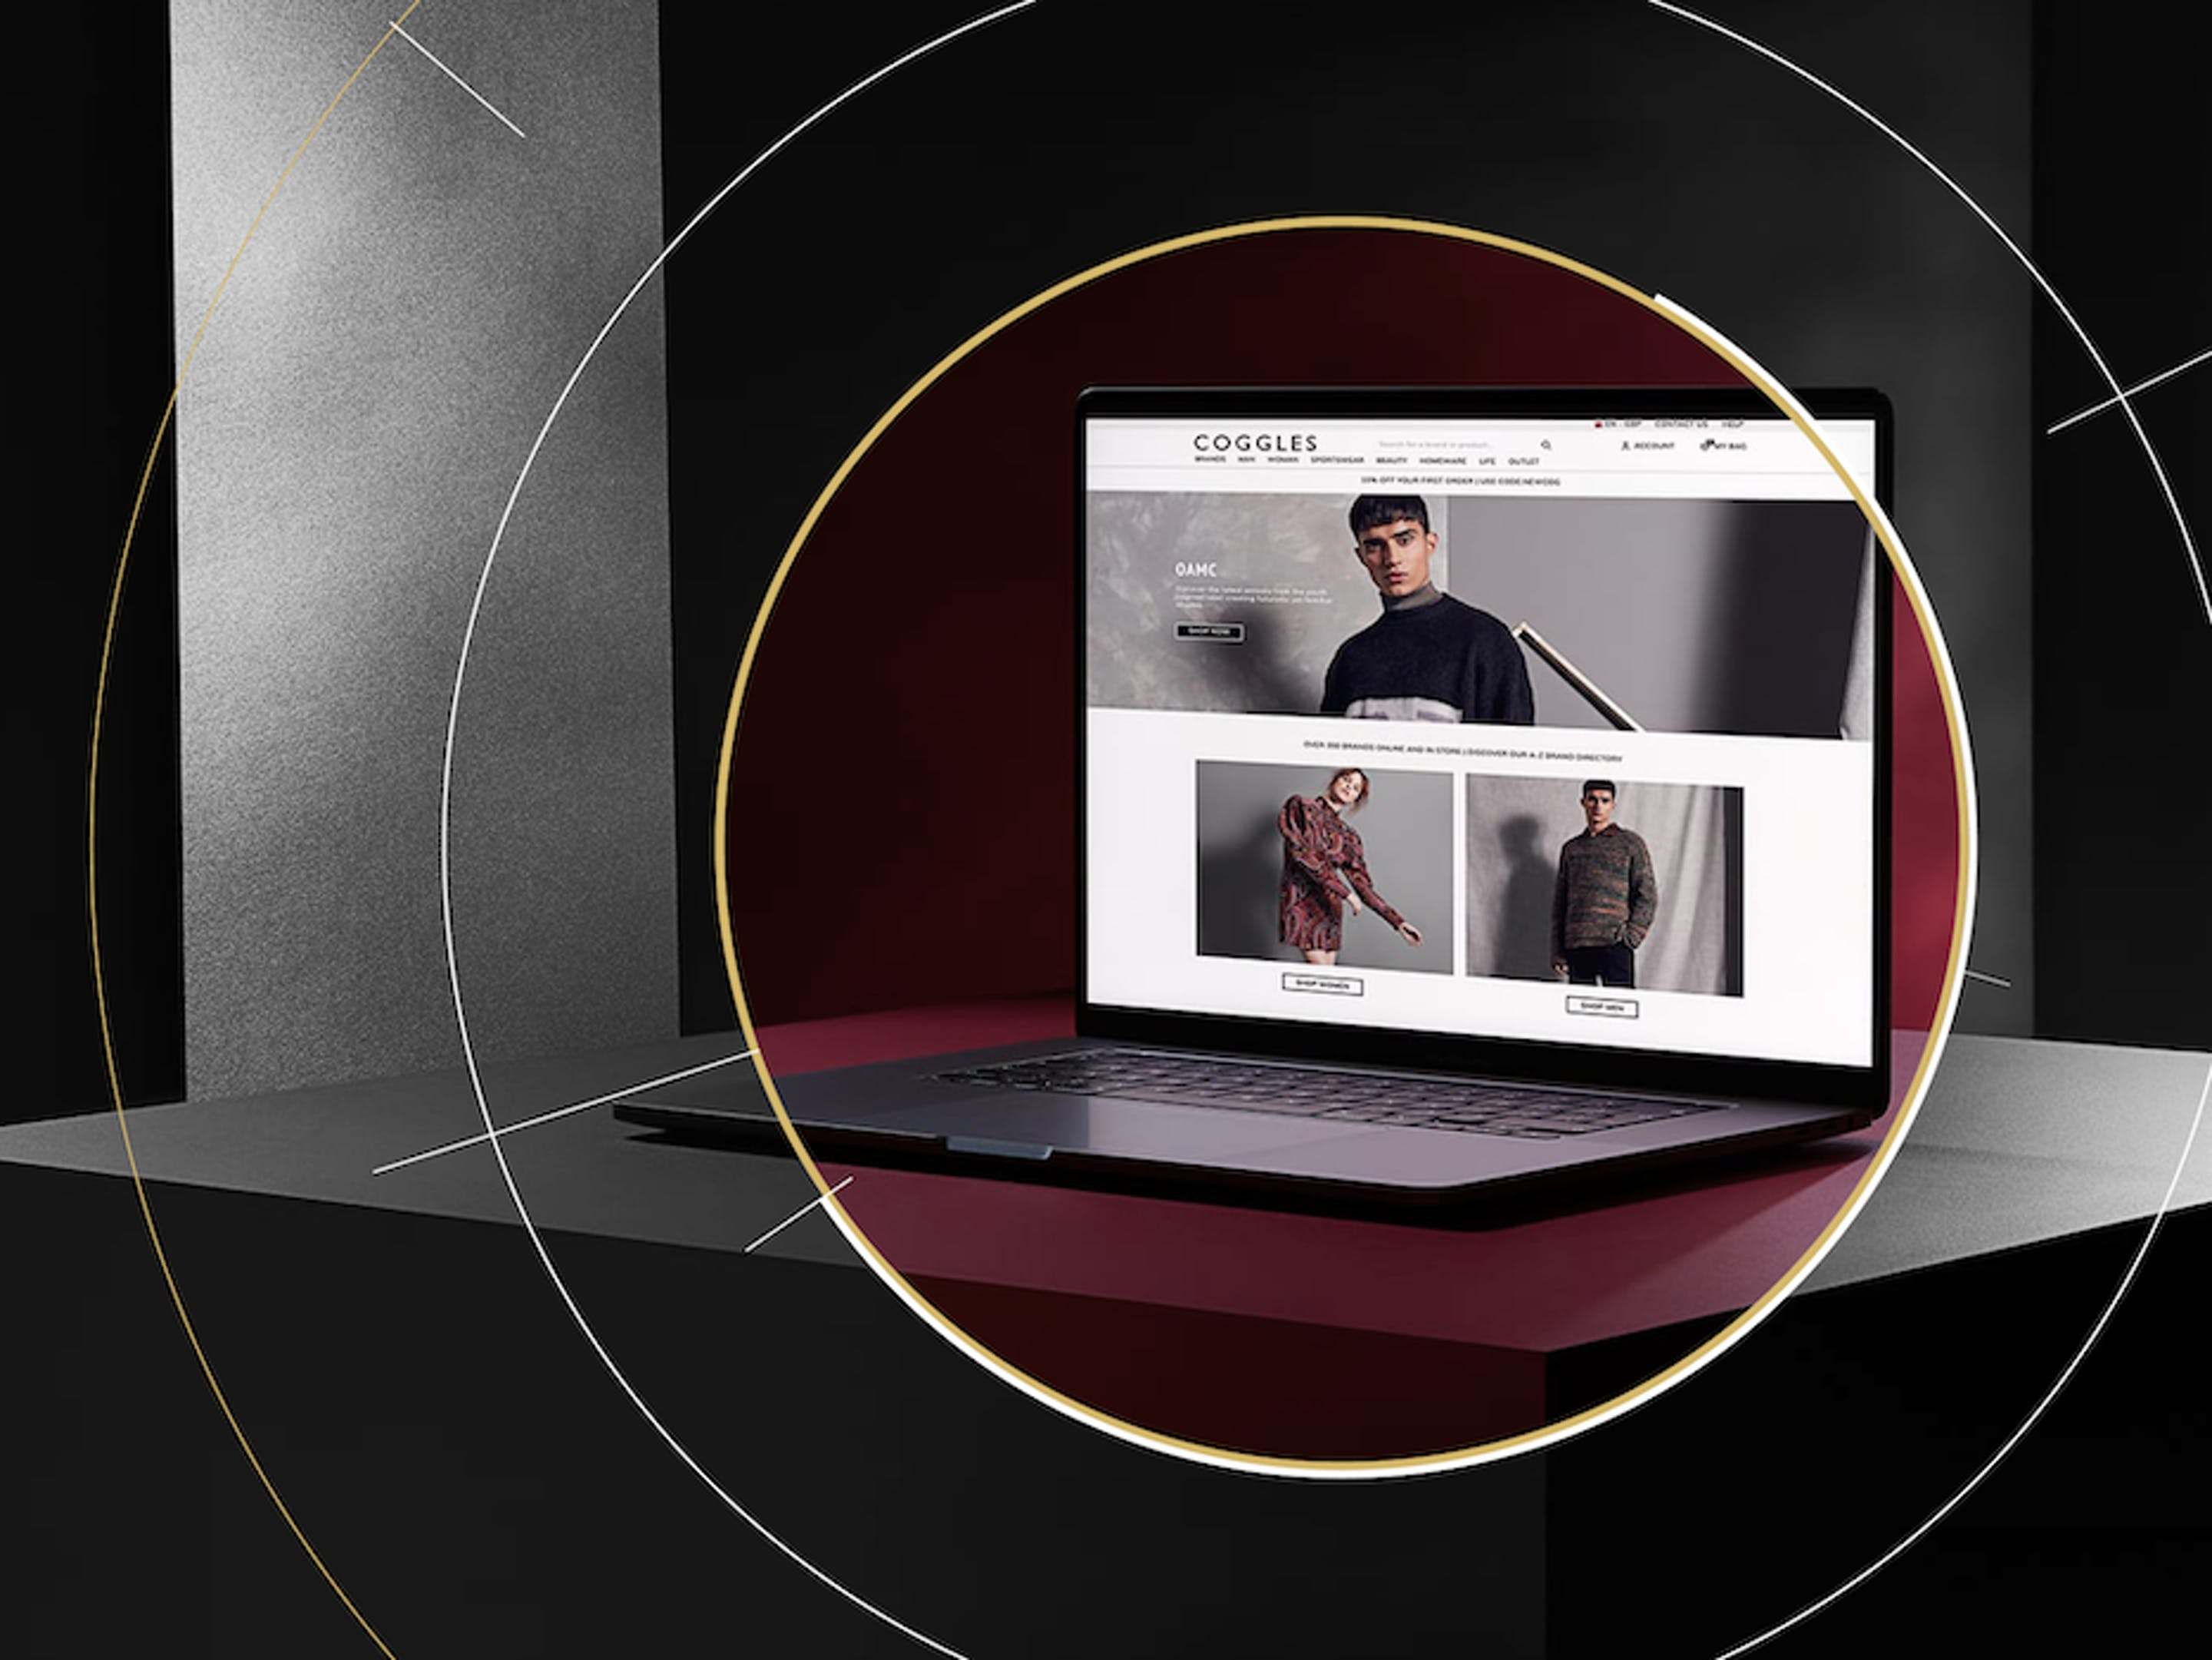 A laptop sits open on a desk. The screen shows the homepage of the Coggles website, an e-commerce fashion retailer.